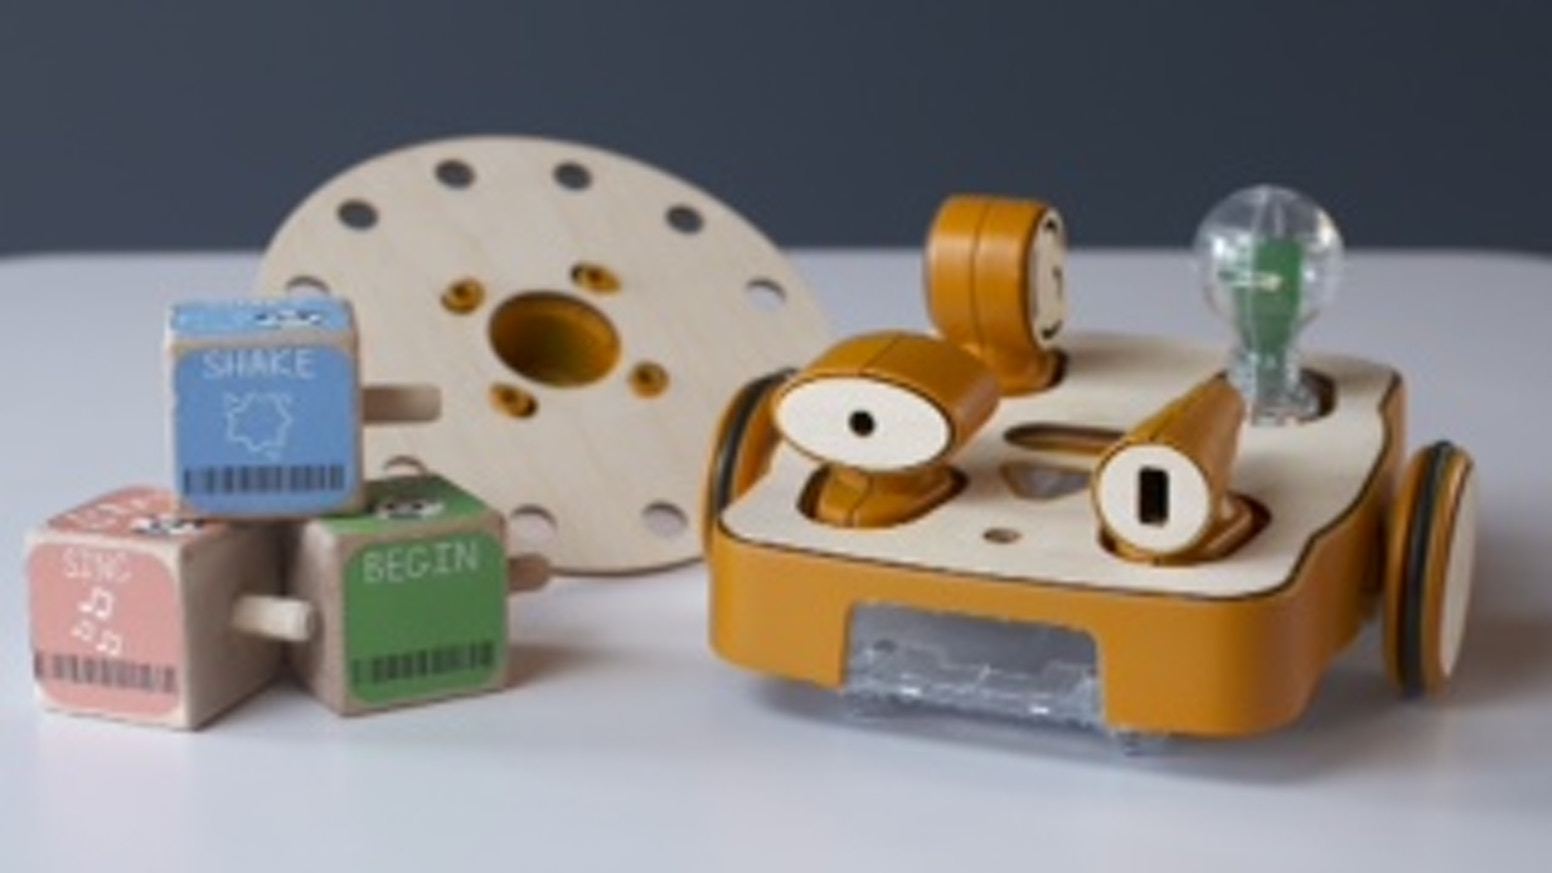 KIBO: Young kids programming robots with wooden blocks by